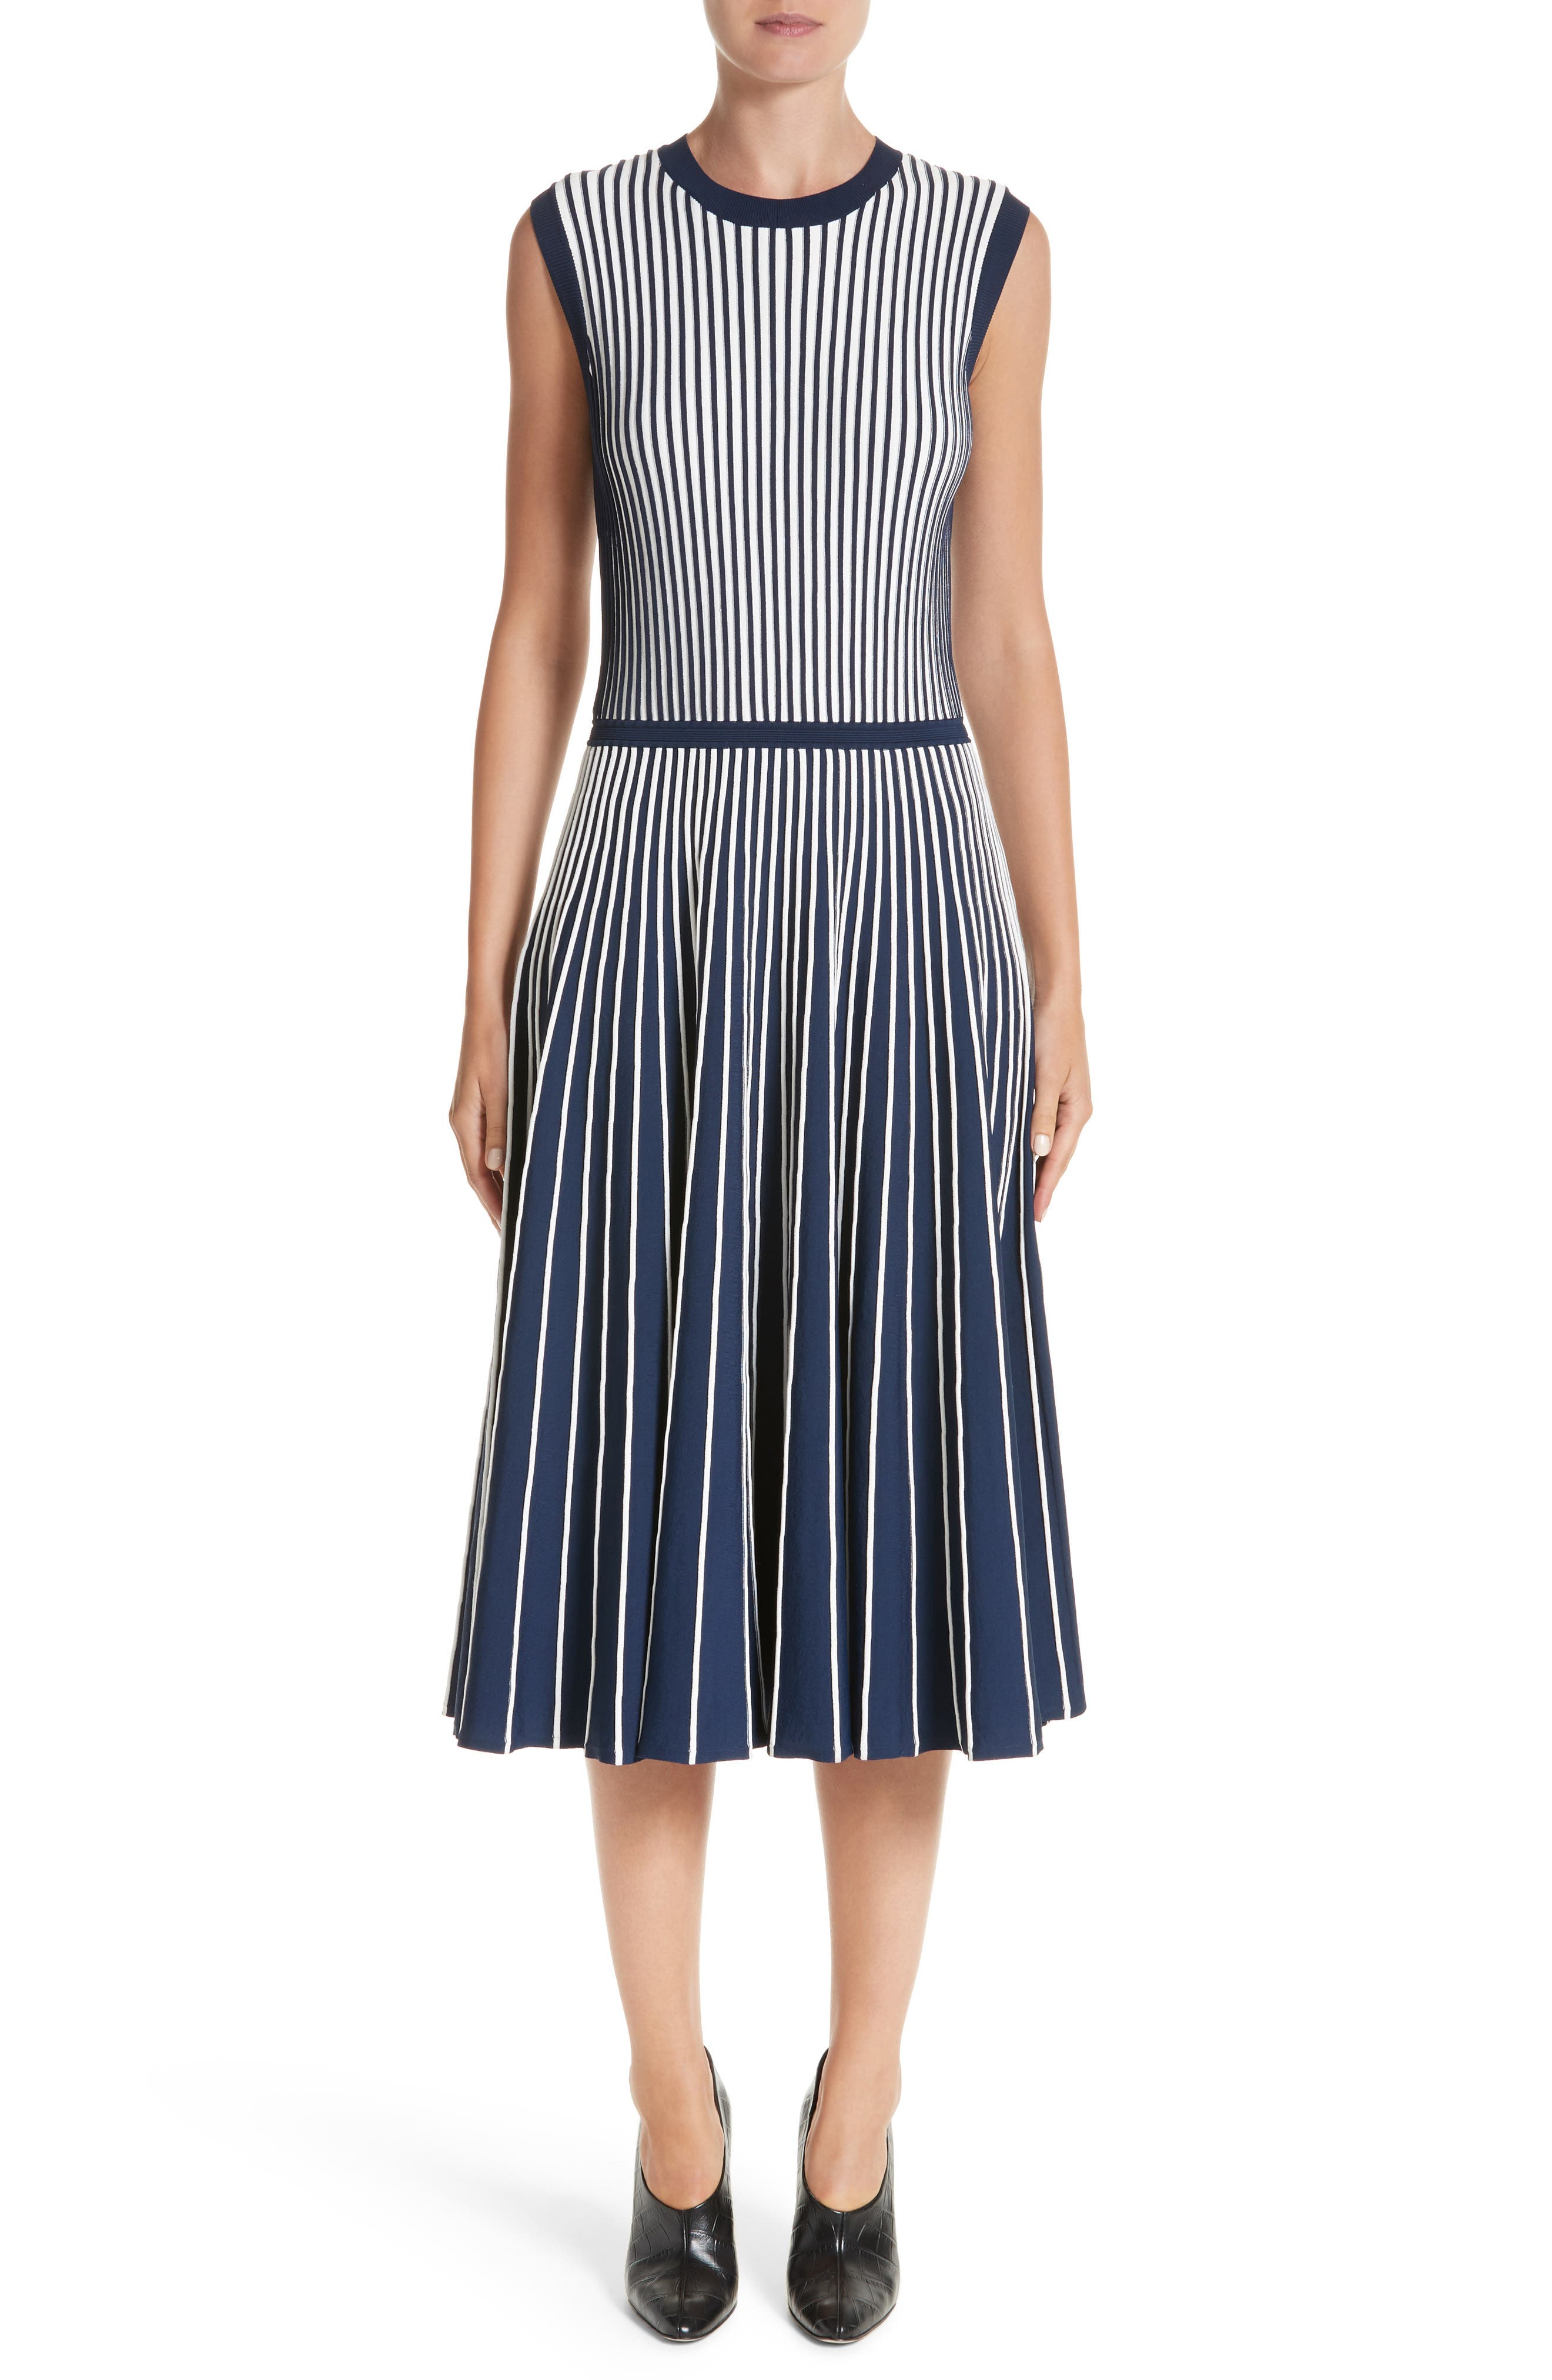 Jason Wu Stripe Knit Day Dress